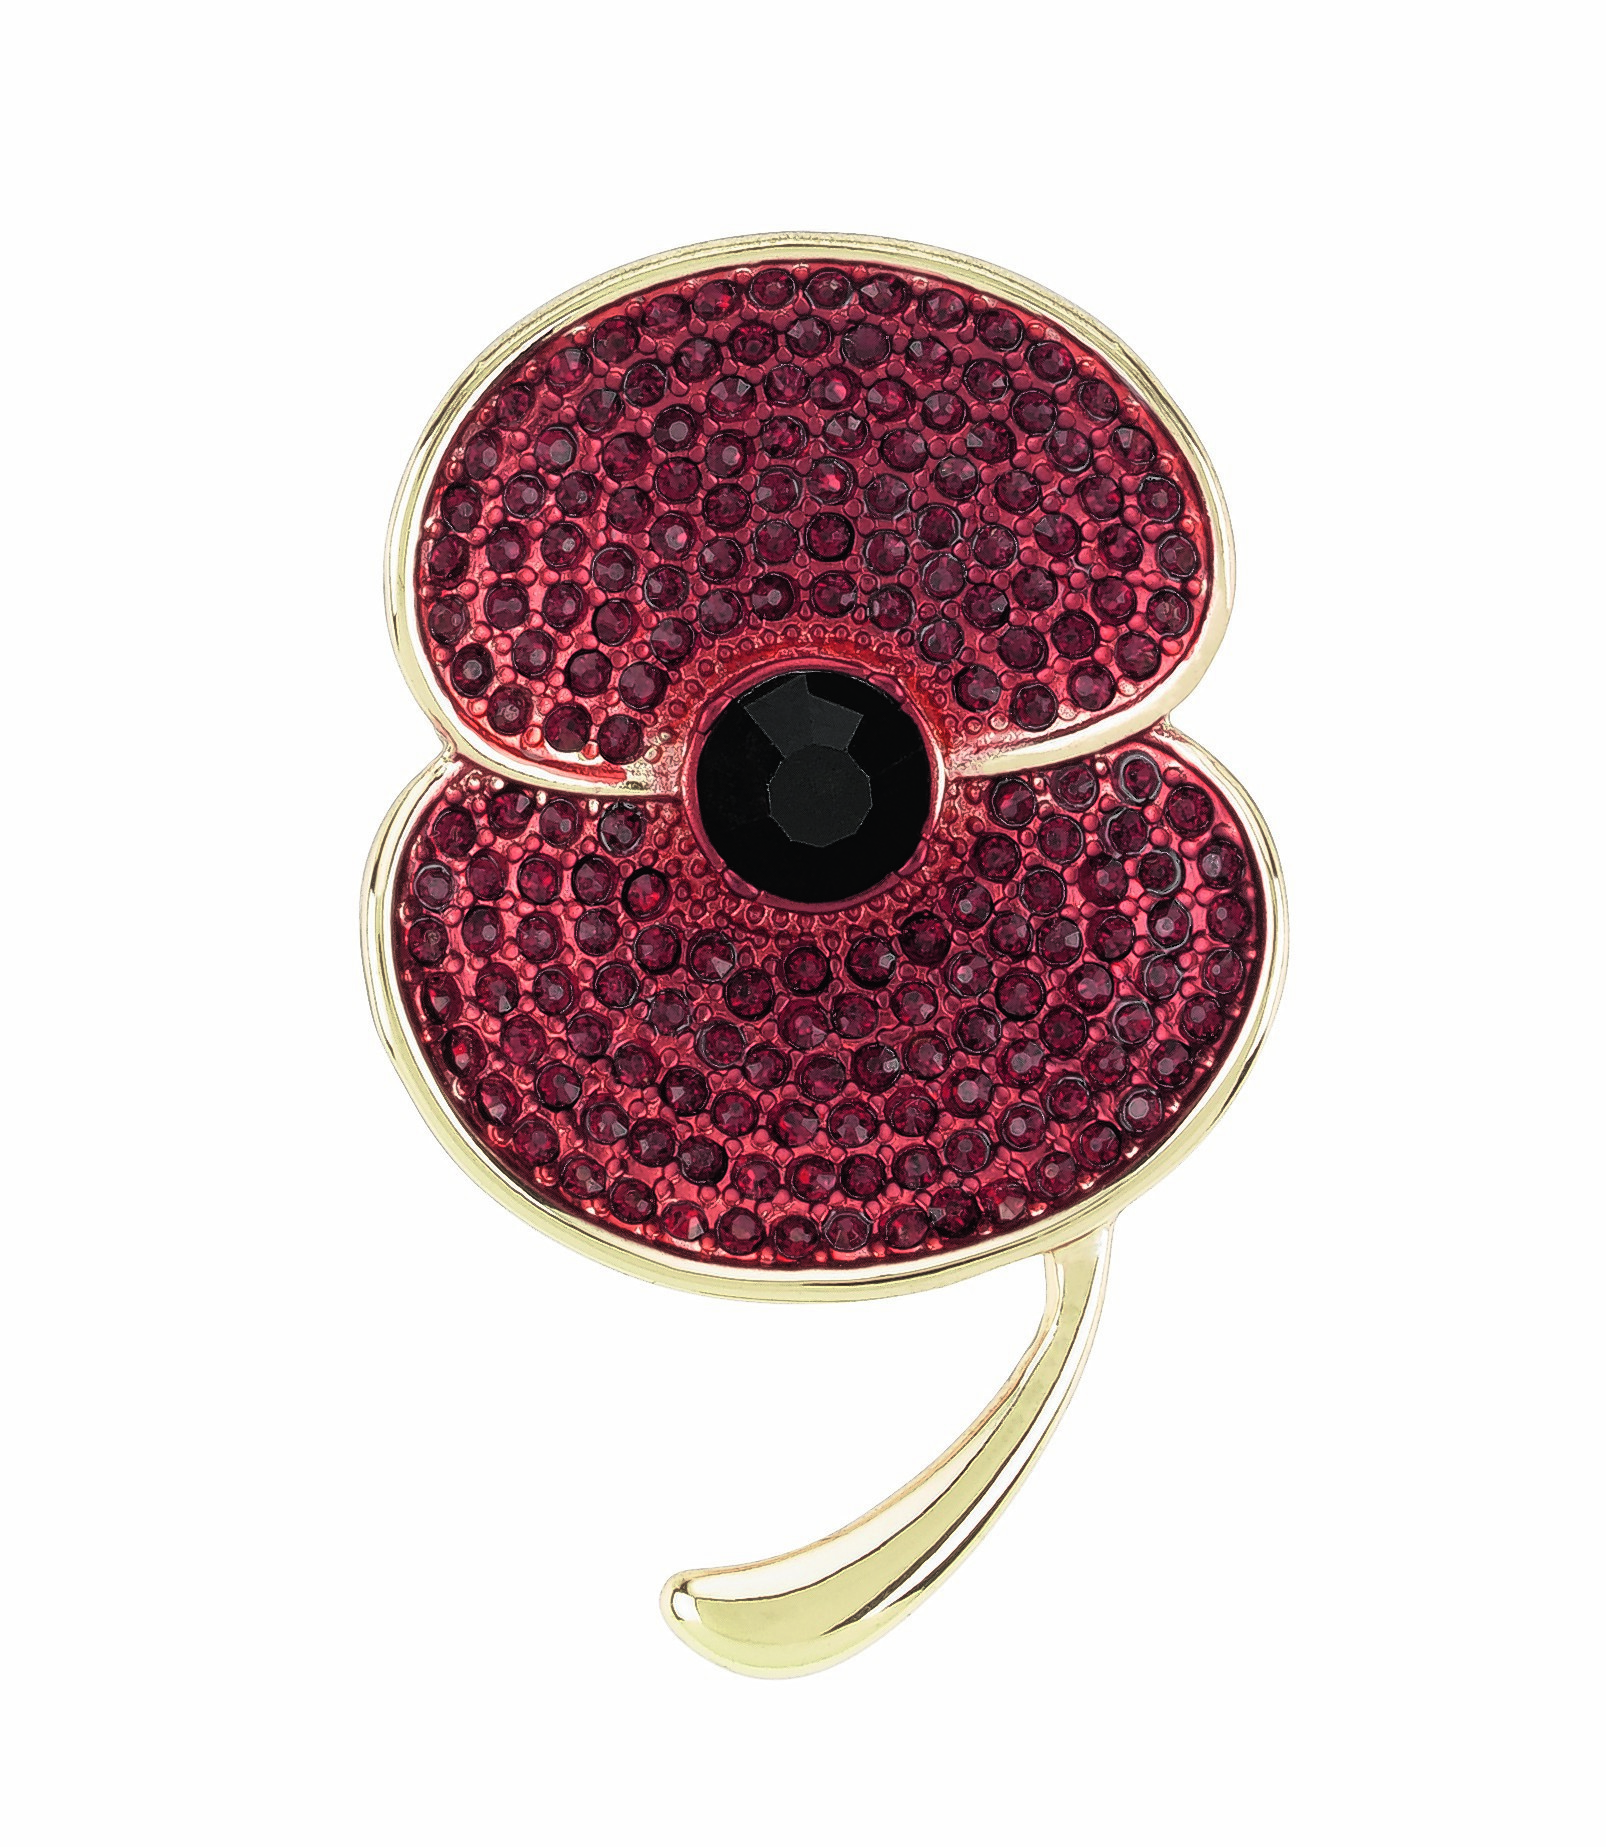 M&S COLLECTION LARGE POPPY BROOCH  £25	SMALL POPPY BROOCH £15